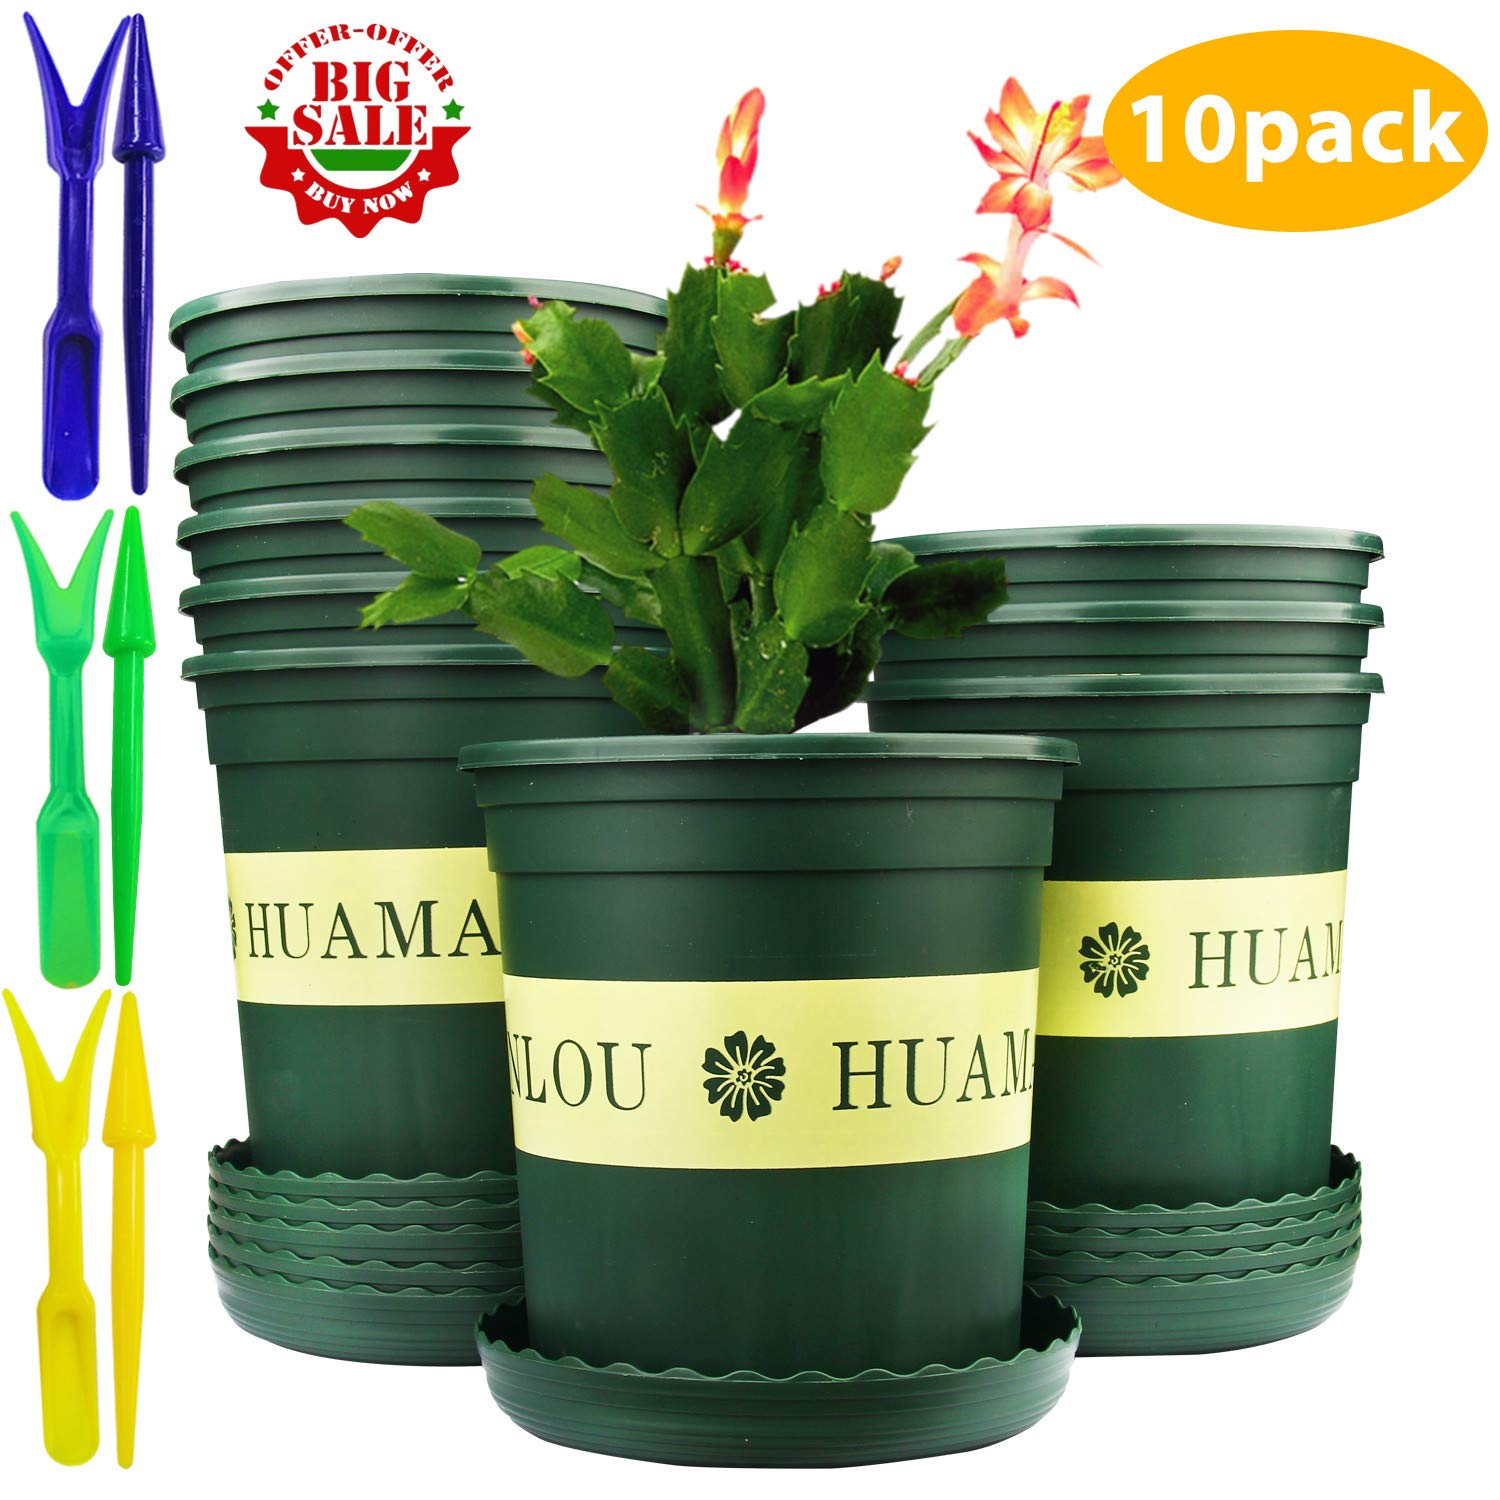 Brajttt 10PCS 1 Gallon Durable Nursery Pot/Garden Planter Pots/Nursery Plant Container with 10PCS Pallet